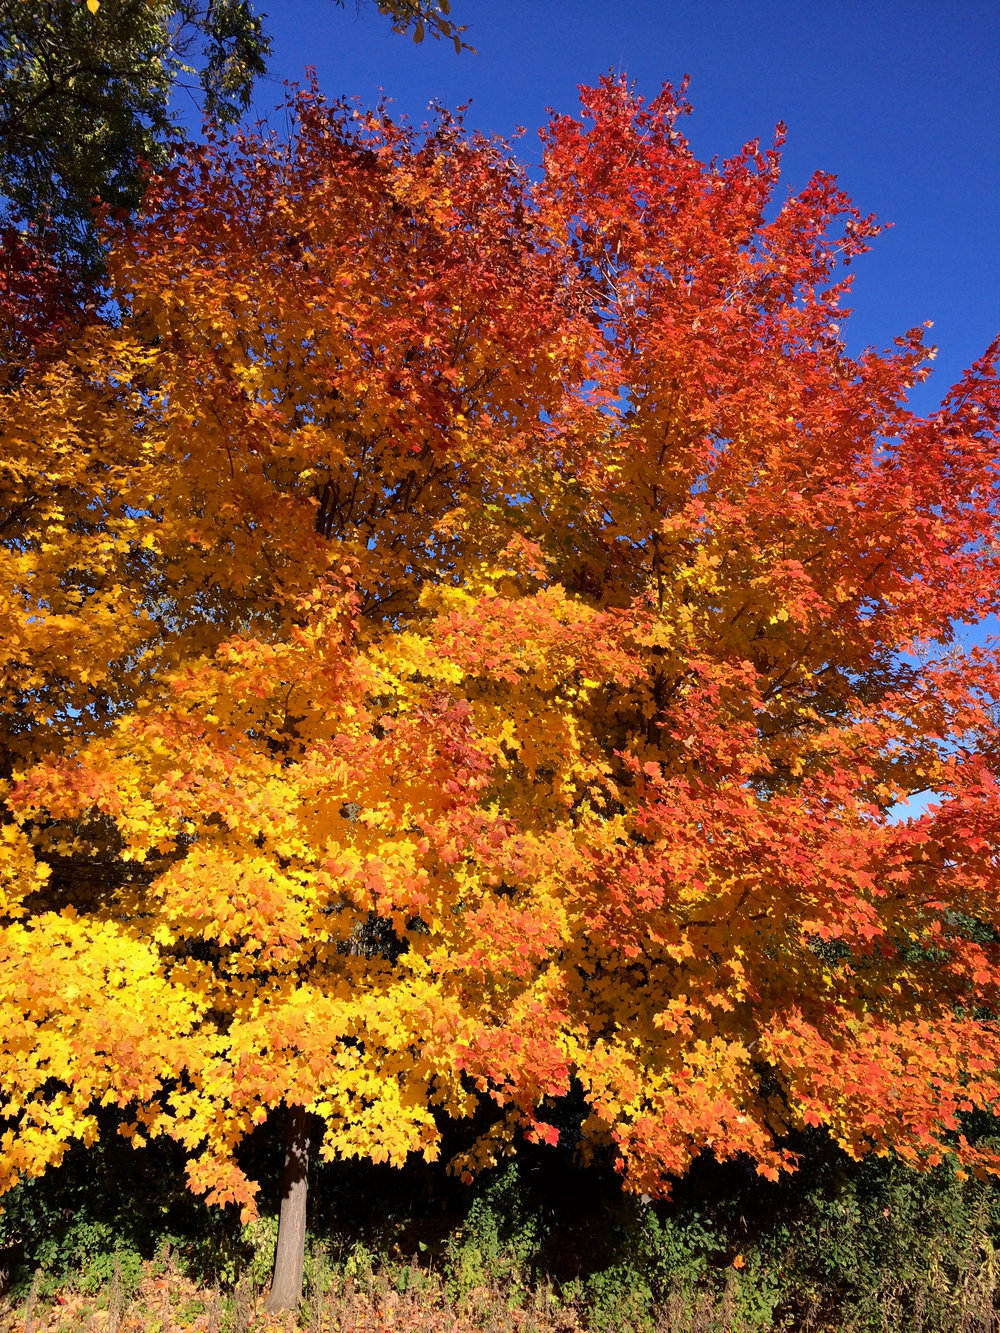 cindi_fall_trees_spiritedtable_photo1.jpg